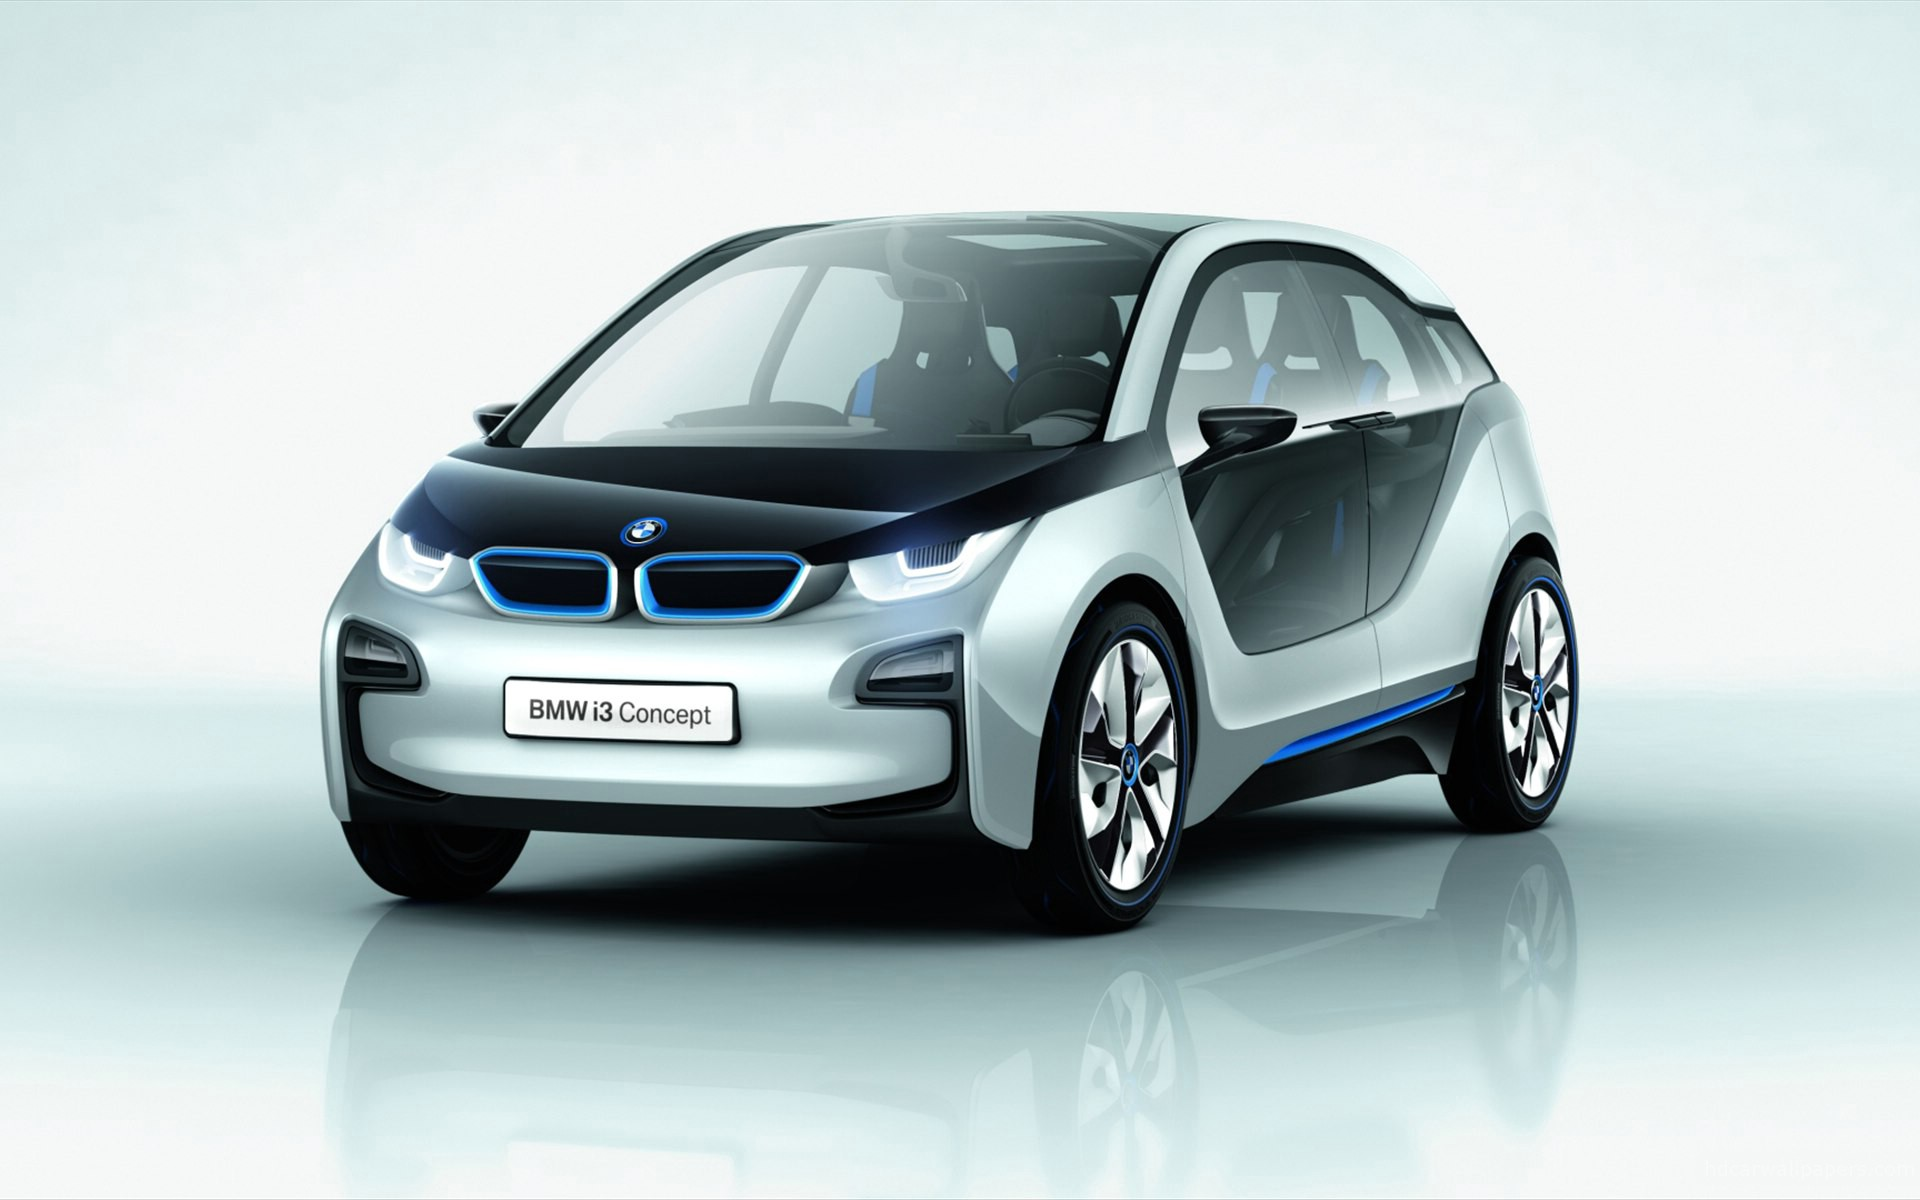 1920x1200 - BMW i3 Concept Wallpapers 30